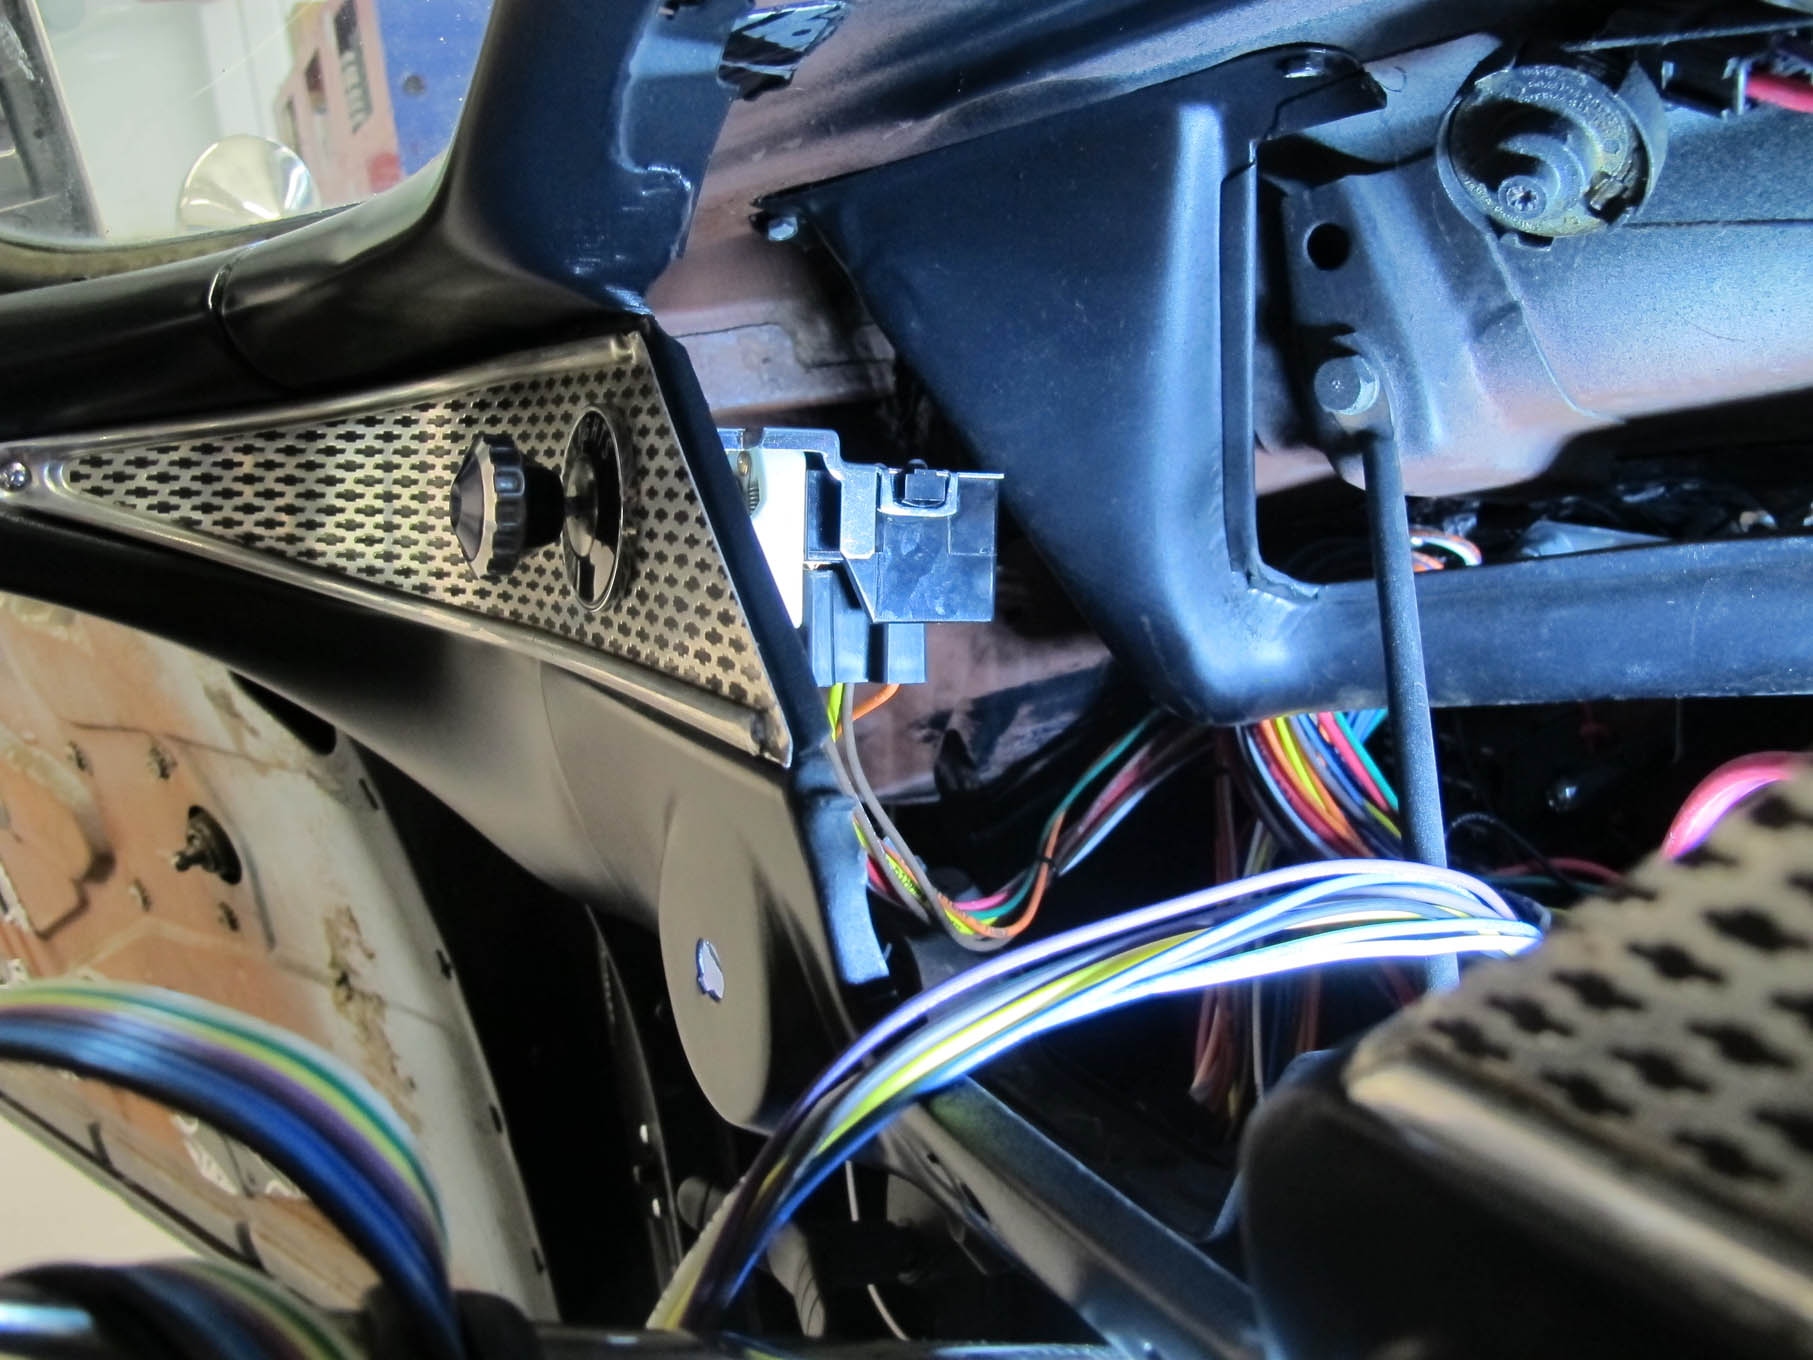 Like the ignition switch, the harness simply plugs into the headlight switch.